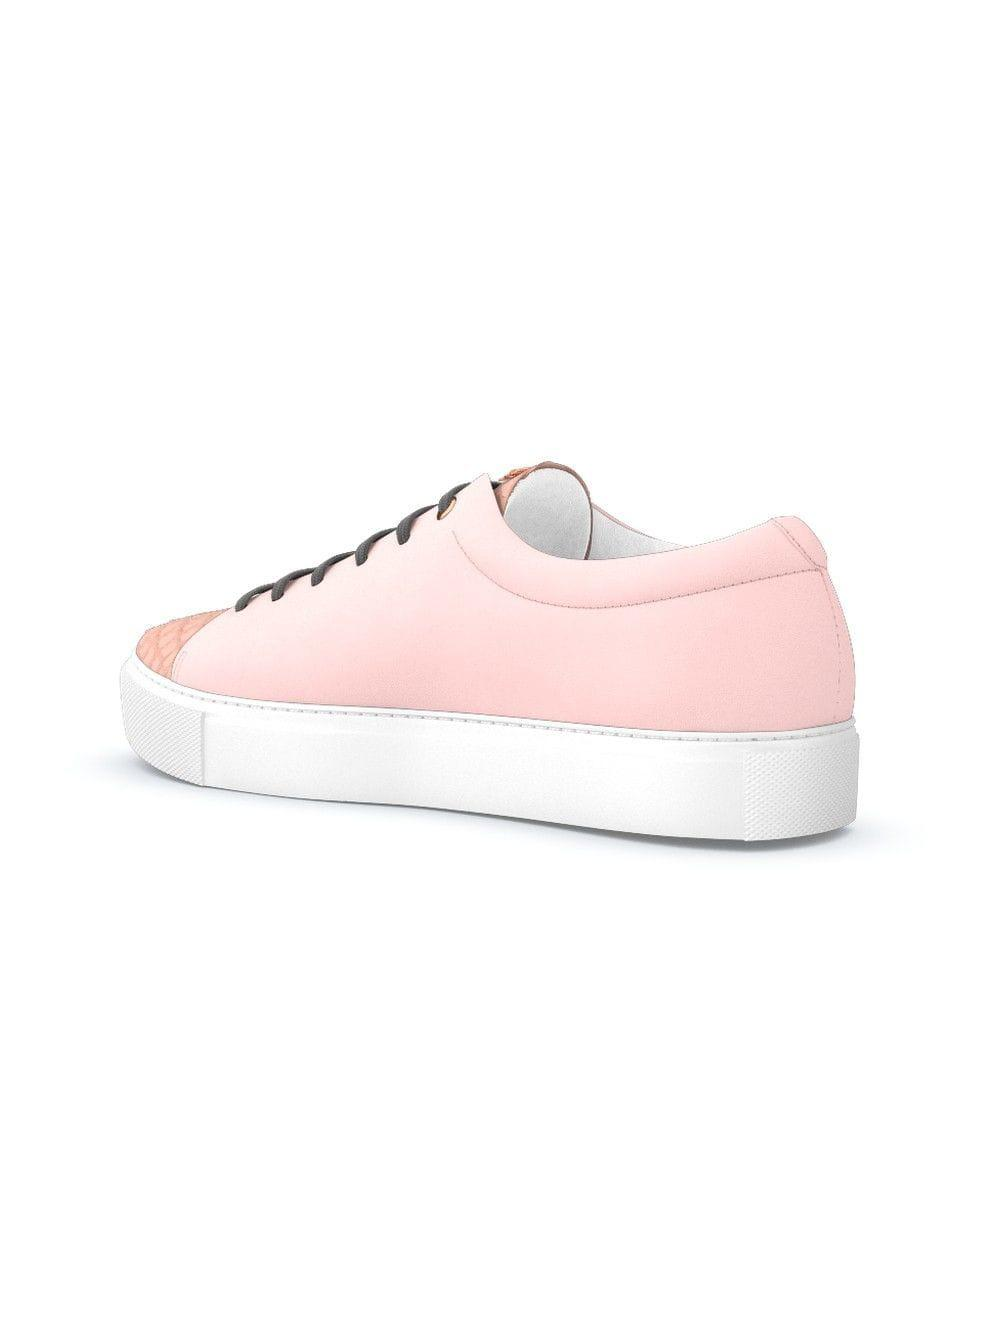 Swear Suede Vyner Sneakers in Pink